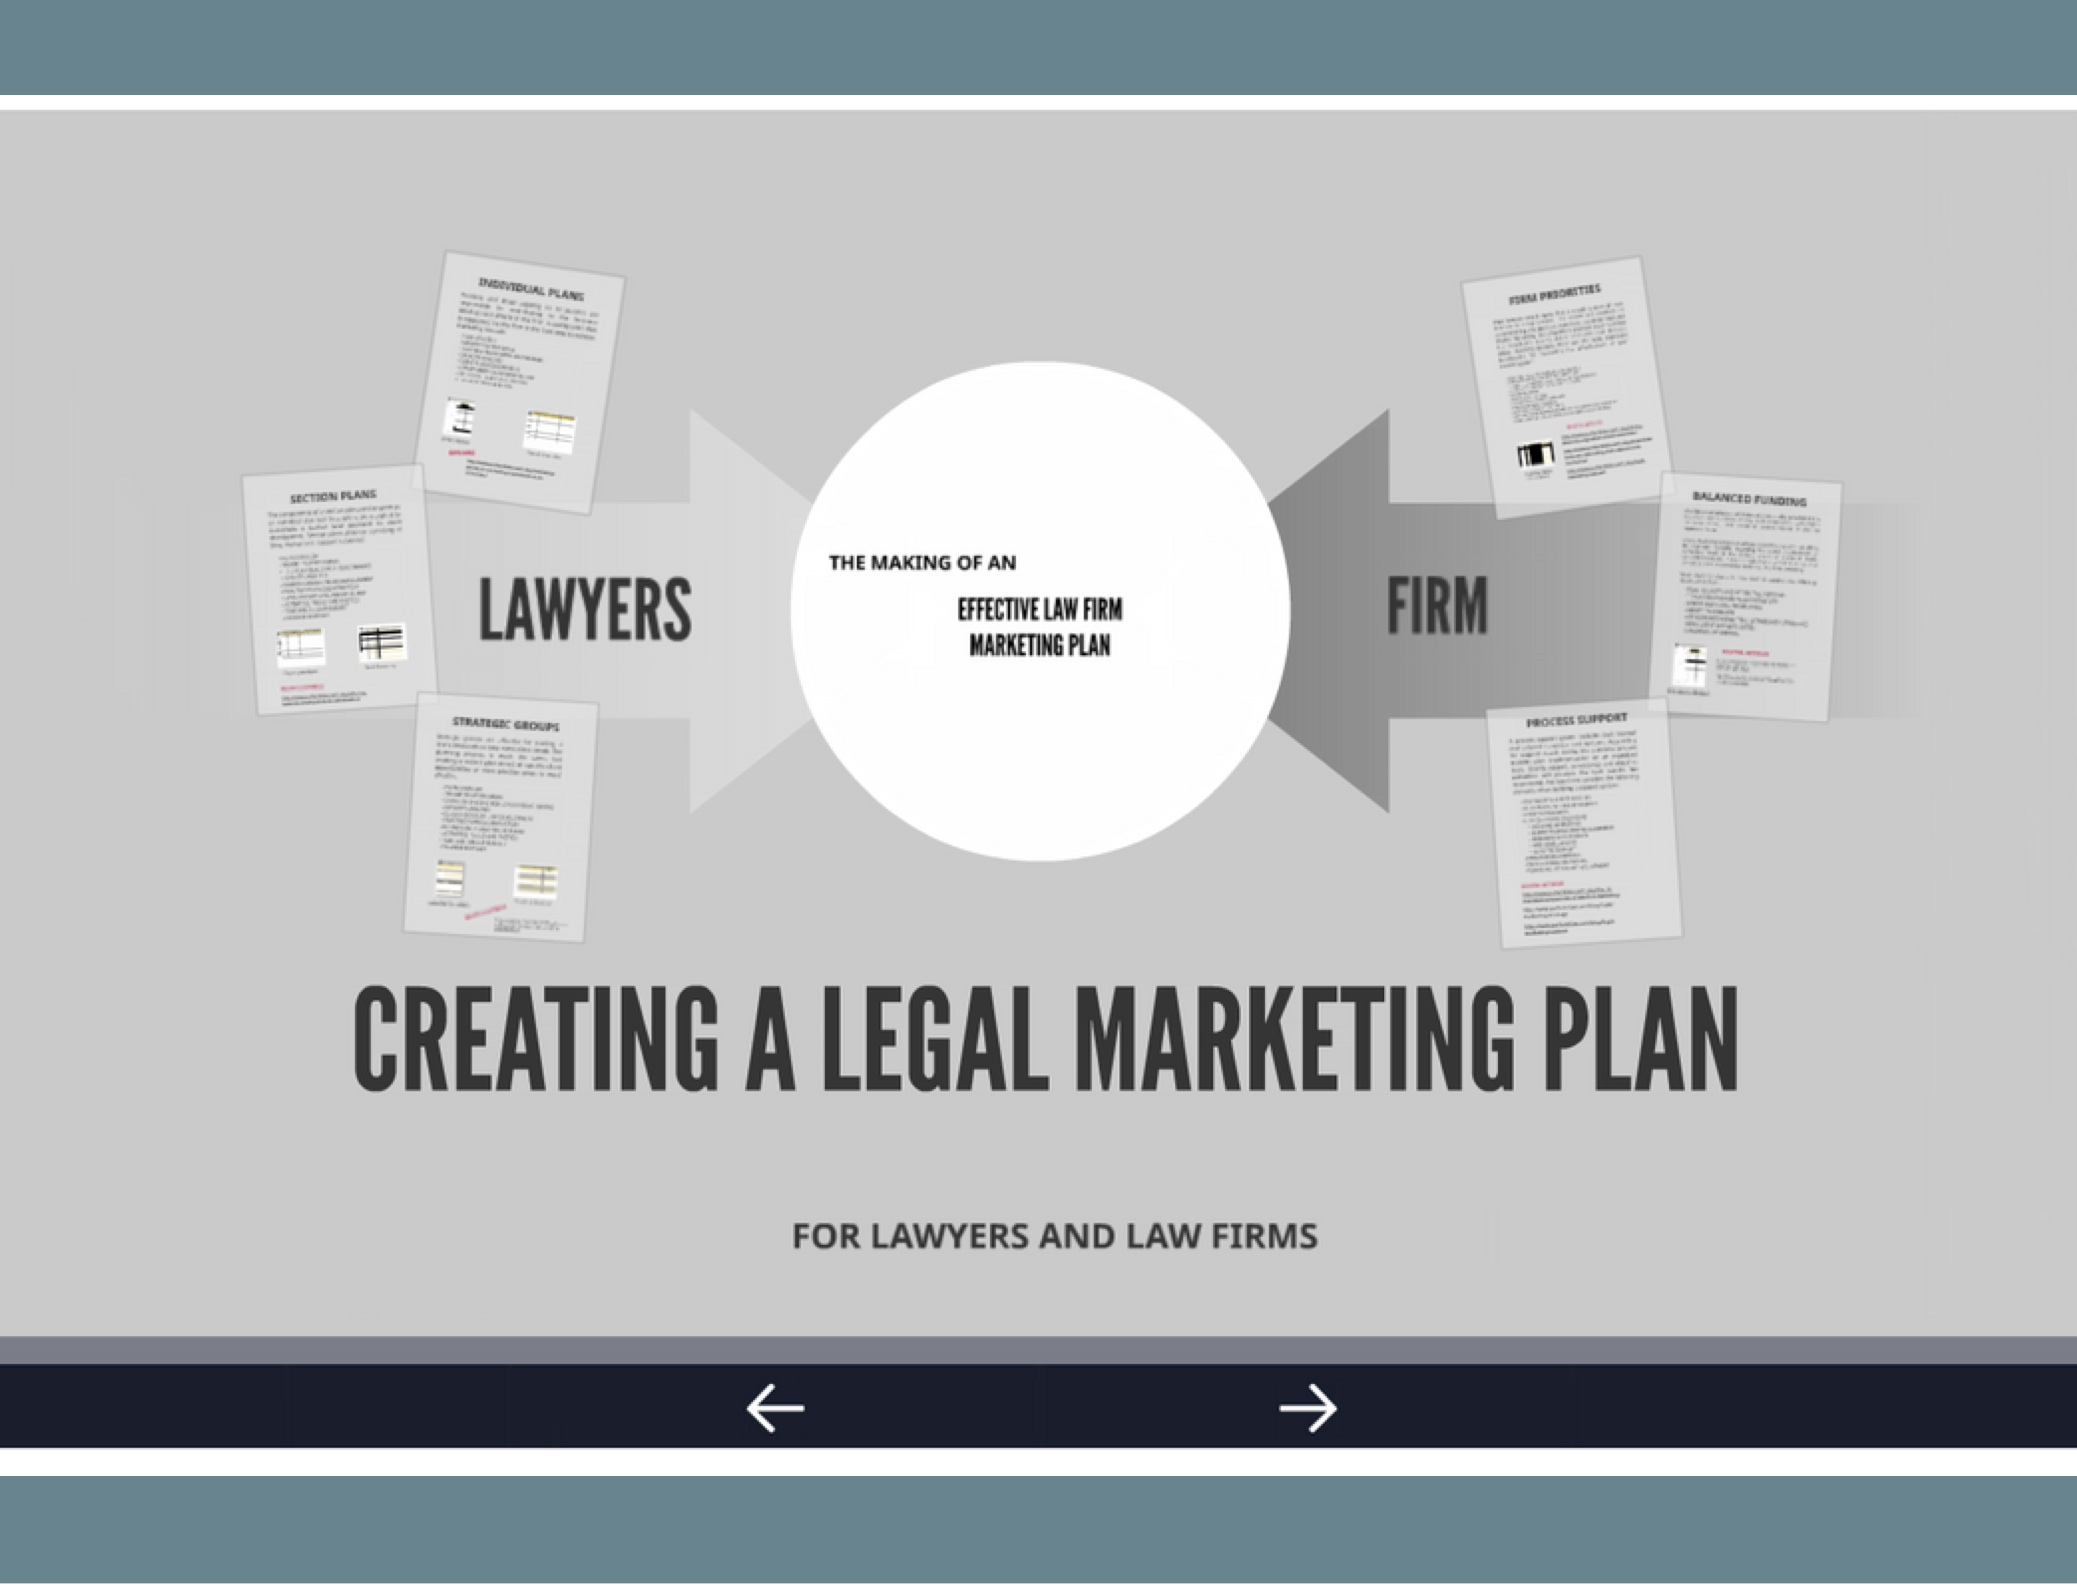 Resources-Presentation-Legal-Marketing-Plan-Image.jpg